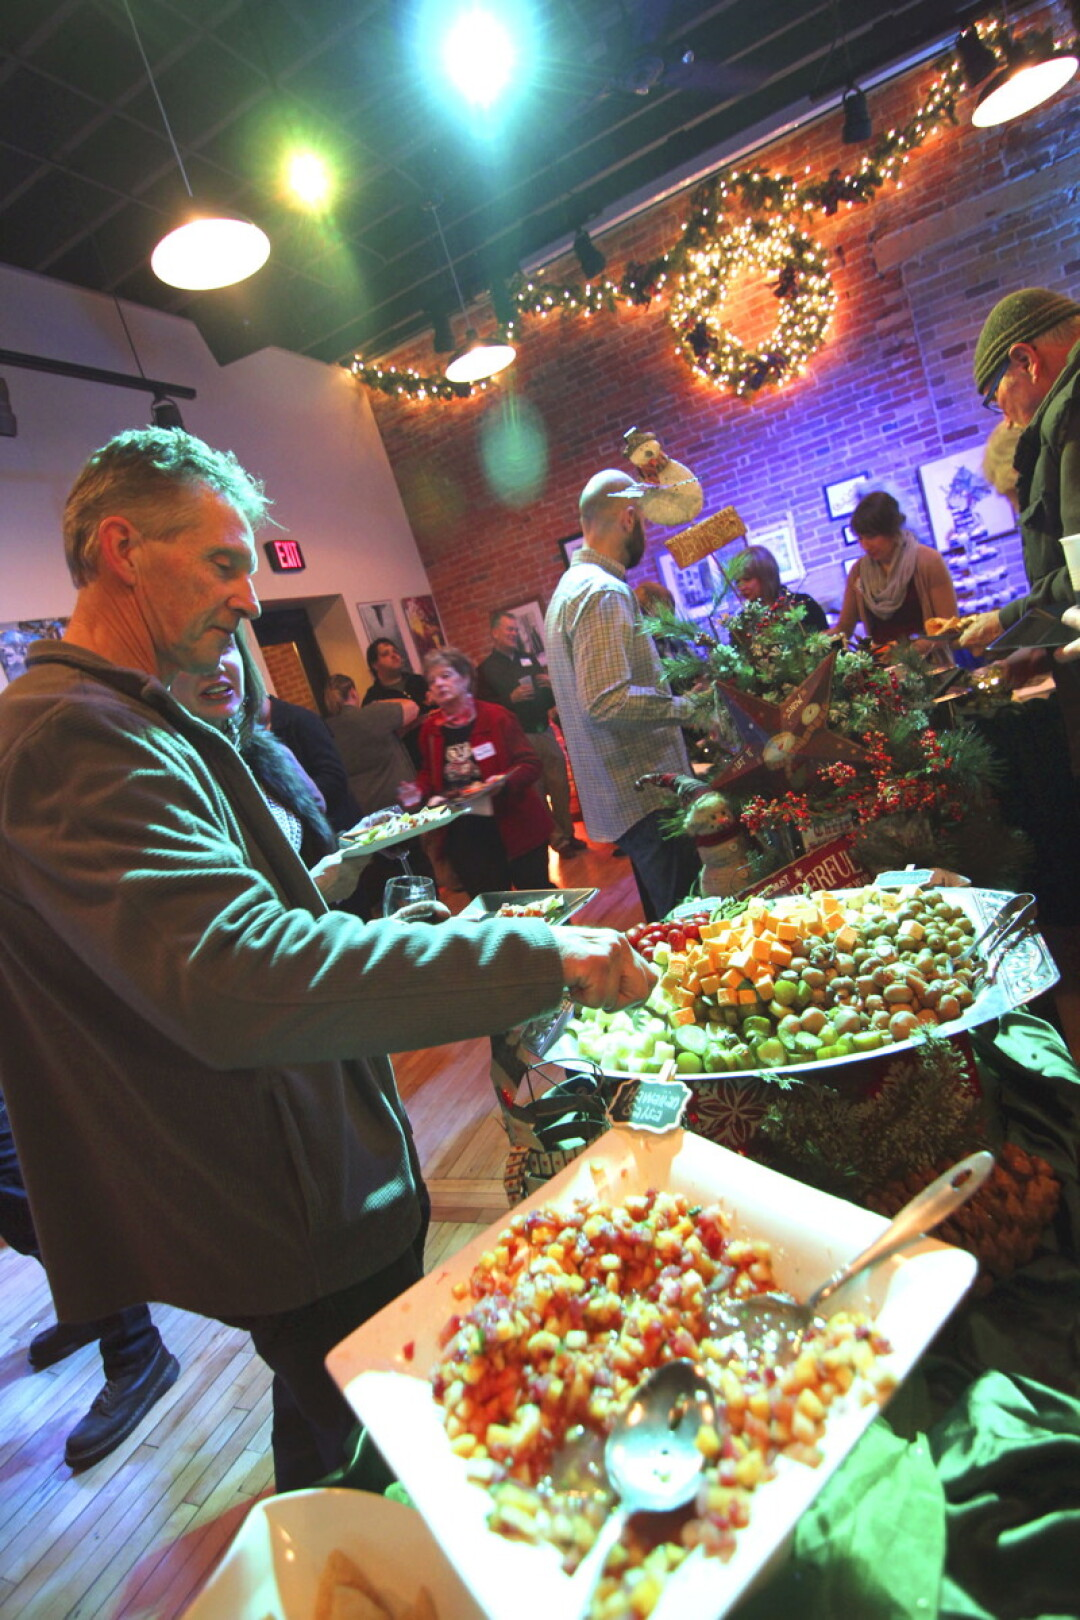 Holiday party catered by KP Katering.